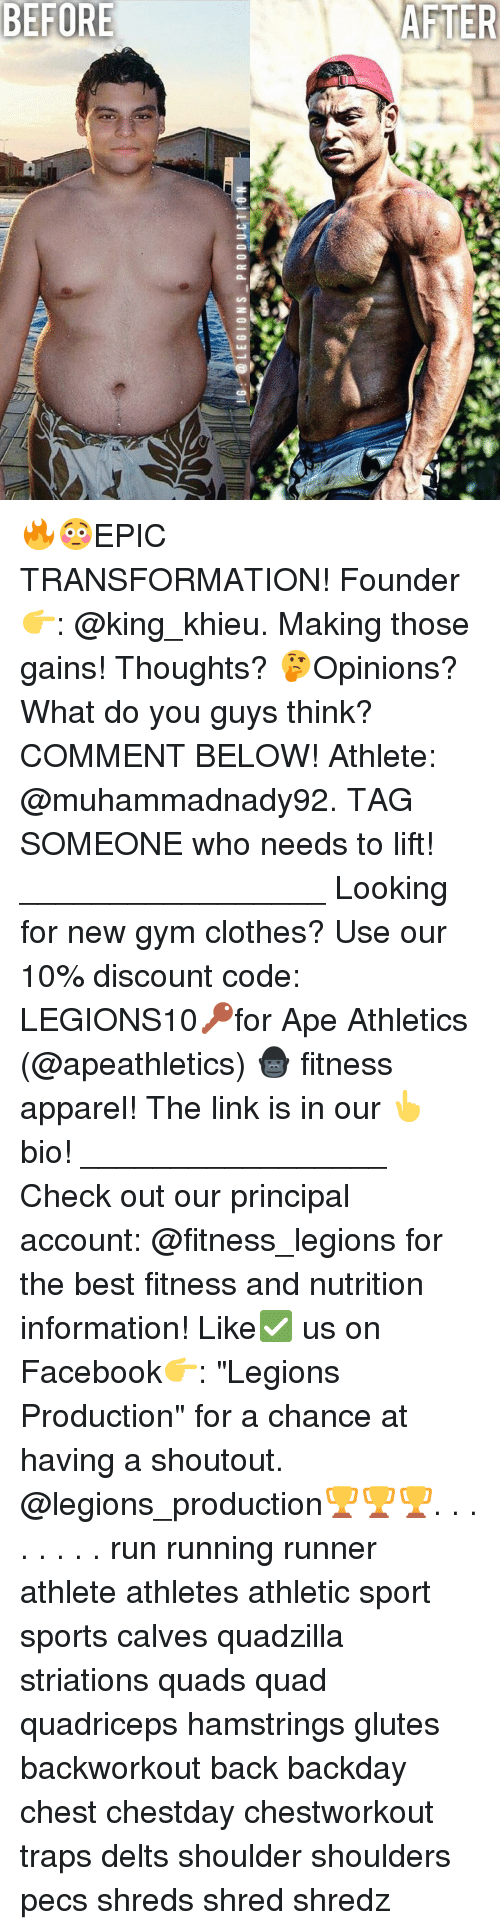 """Calv: LEGIONS PRODUCTION 🔥😳EPIC TRANSFORMATION! Founder 👉: @king_khieu. Making those gains! Thoughts? 🤔Opinions? What do you guys think? COMMENT BELOW! Athlete: @muhammadnady92. TAG SOMEONE who needs to lift! _________________ Looking for new gym clothes? Use our 10% discount code: LEGIONS10🔑for Ape Athletics (@apeathletics) 🦍 fitness apparel! The link is in our 👆 bio! _________________ Check out our principal account: @fitness_legions for the best fitness and nutrition information! Like✅ us on Facebook👉: """"Legions Production"""" for a chance at having a shoutout. @legions_production🏆🏆🏆. . . . . . . . run running runner athlete athletes athletic sport sports calves quadzilla striations quads quad quadriceps hamstrings glutes backworkout back backday chest chestday chestworkout traps delts shoulder shoulders pecs shreds shred shredz"""